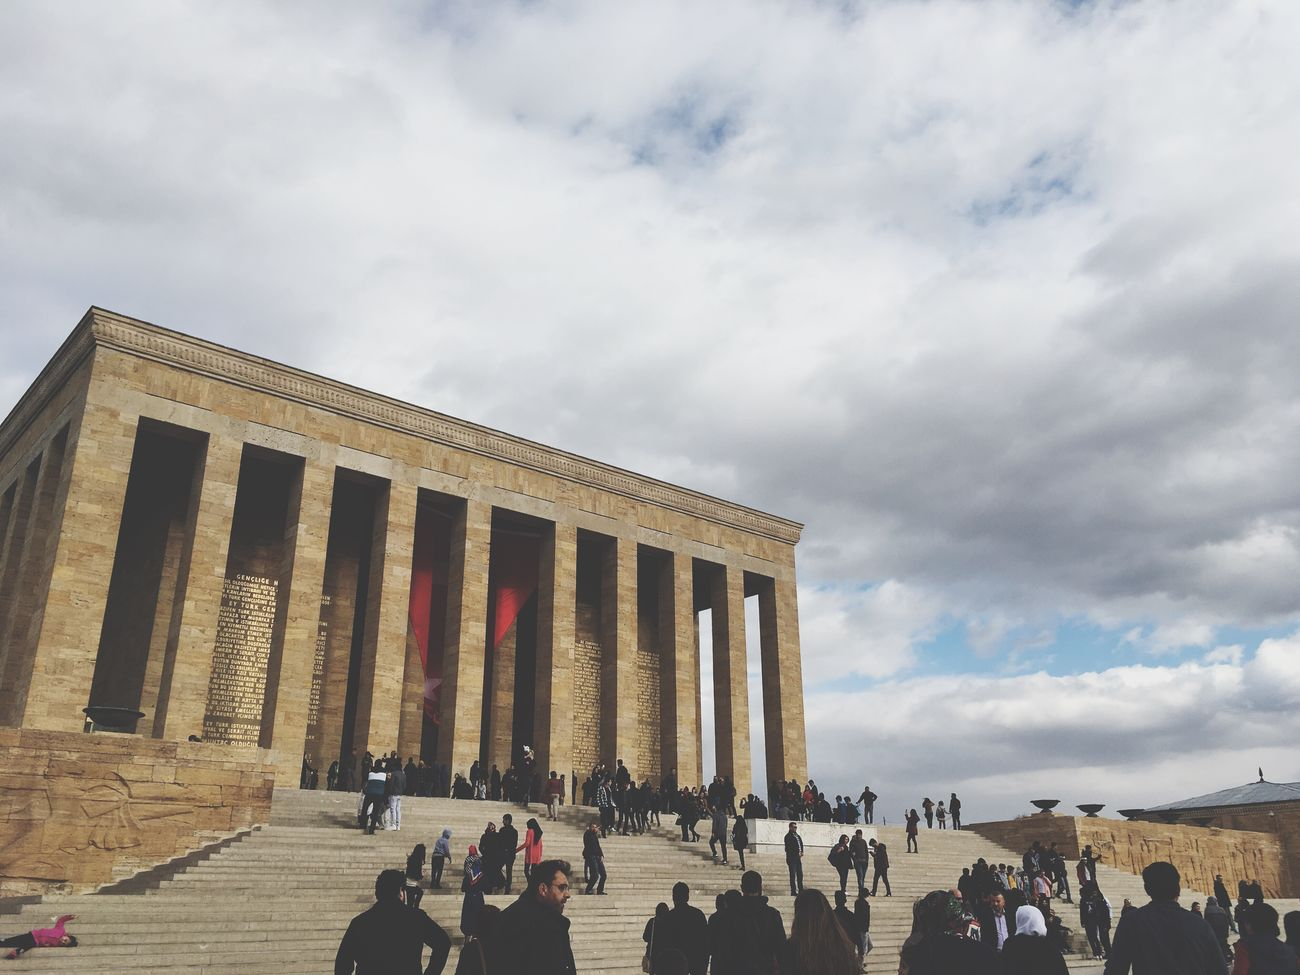 Large Group Of People Real People Architecture Built Structure Sky Cloud - Sky Building Exterior Lifestyles Women Leisure Activity Architectural Column Men Outdoors Tourism Day Standing Low Angle View Crowd People Adult Anıtkabir Anıtkabirdeyiz